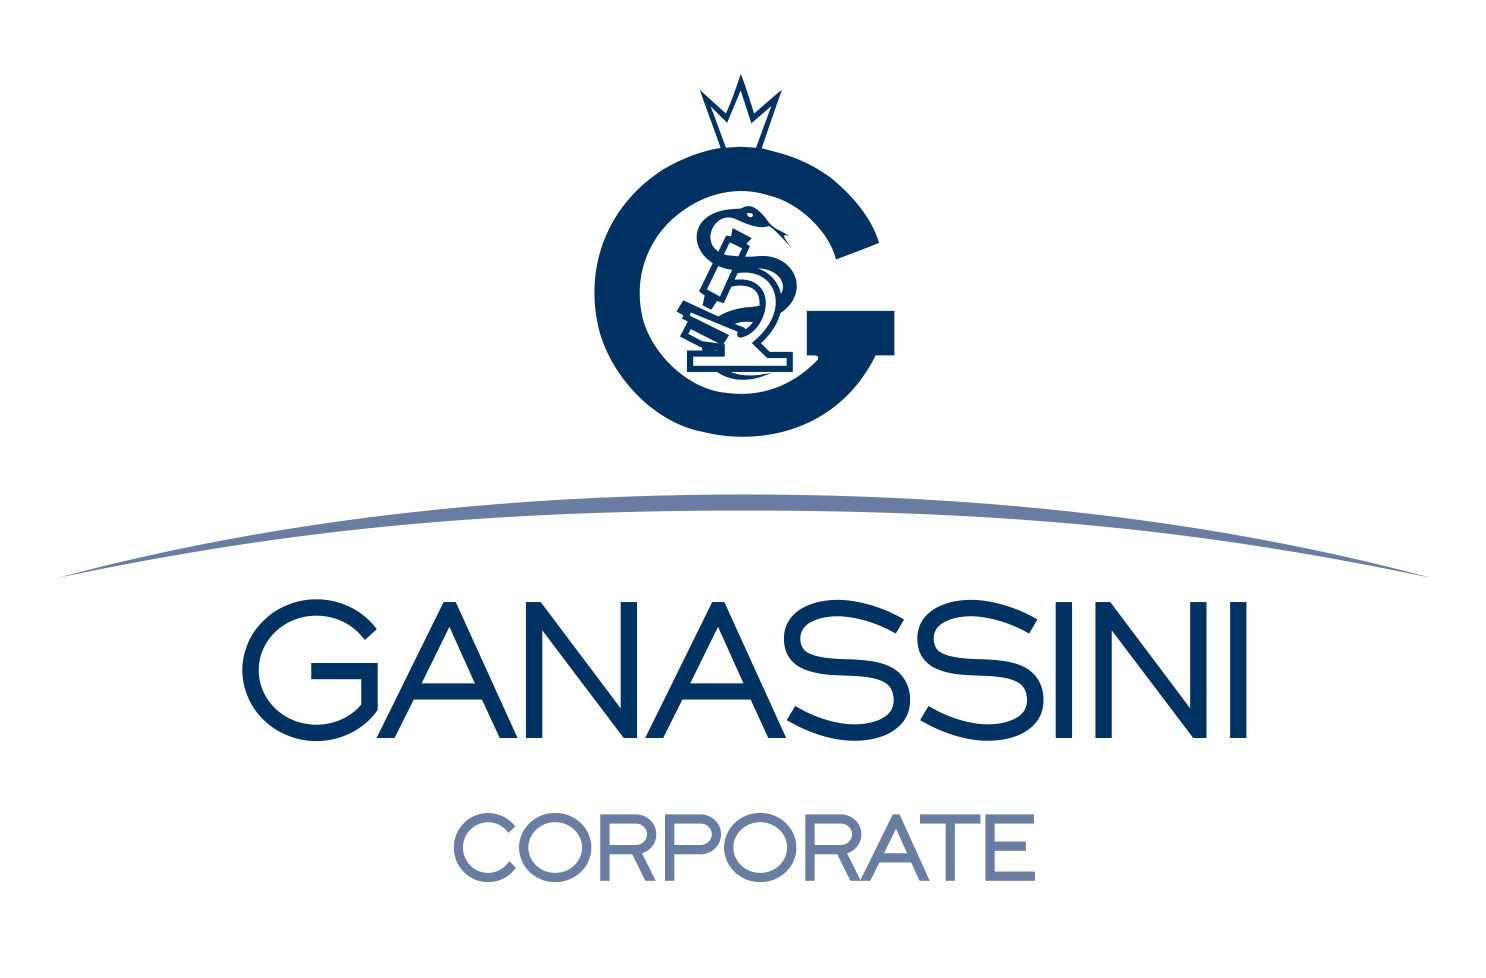 Ganassini_Corporate_pos_neg